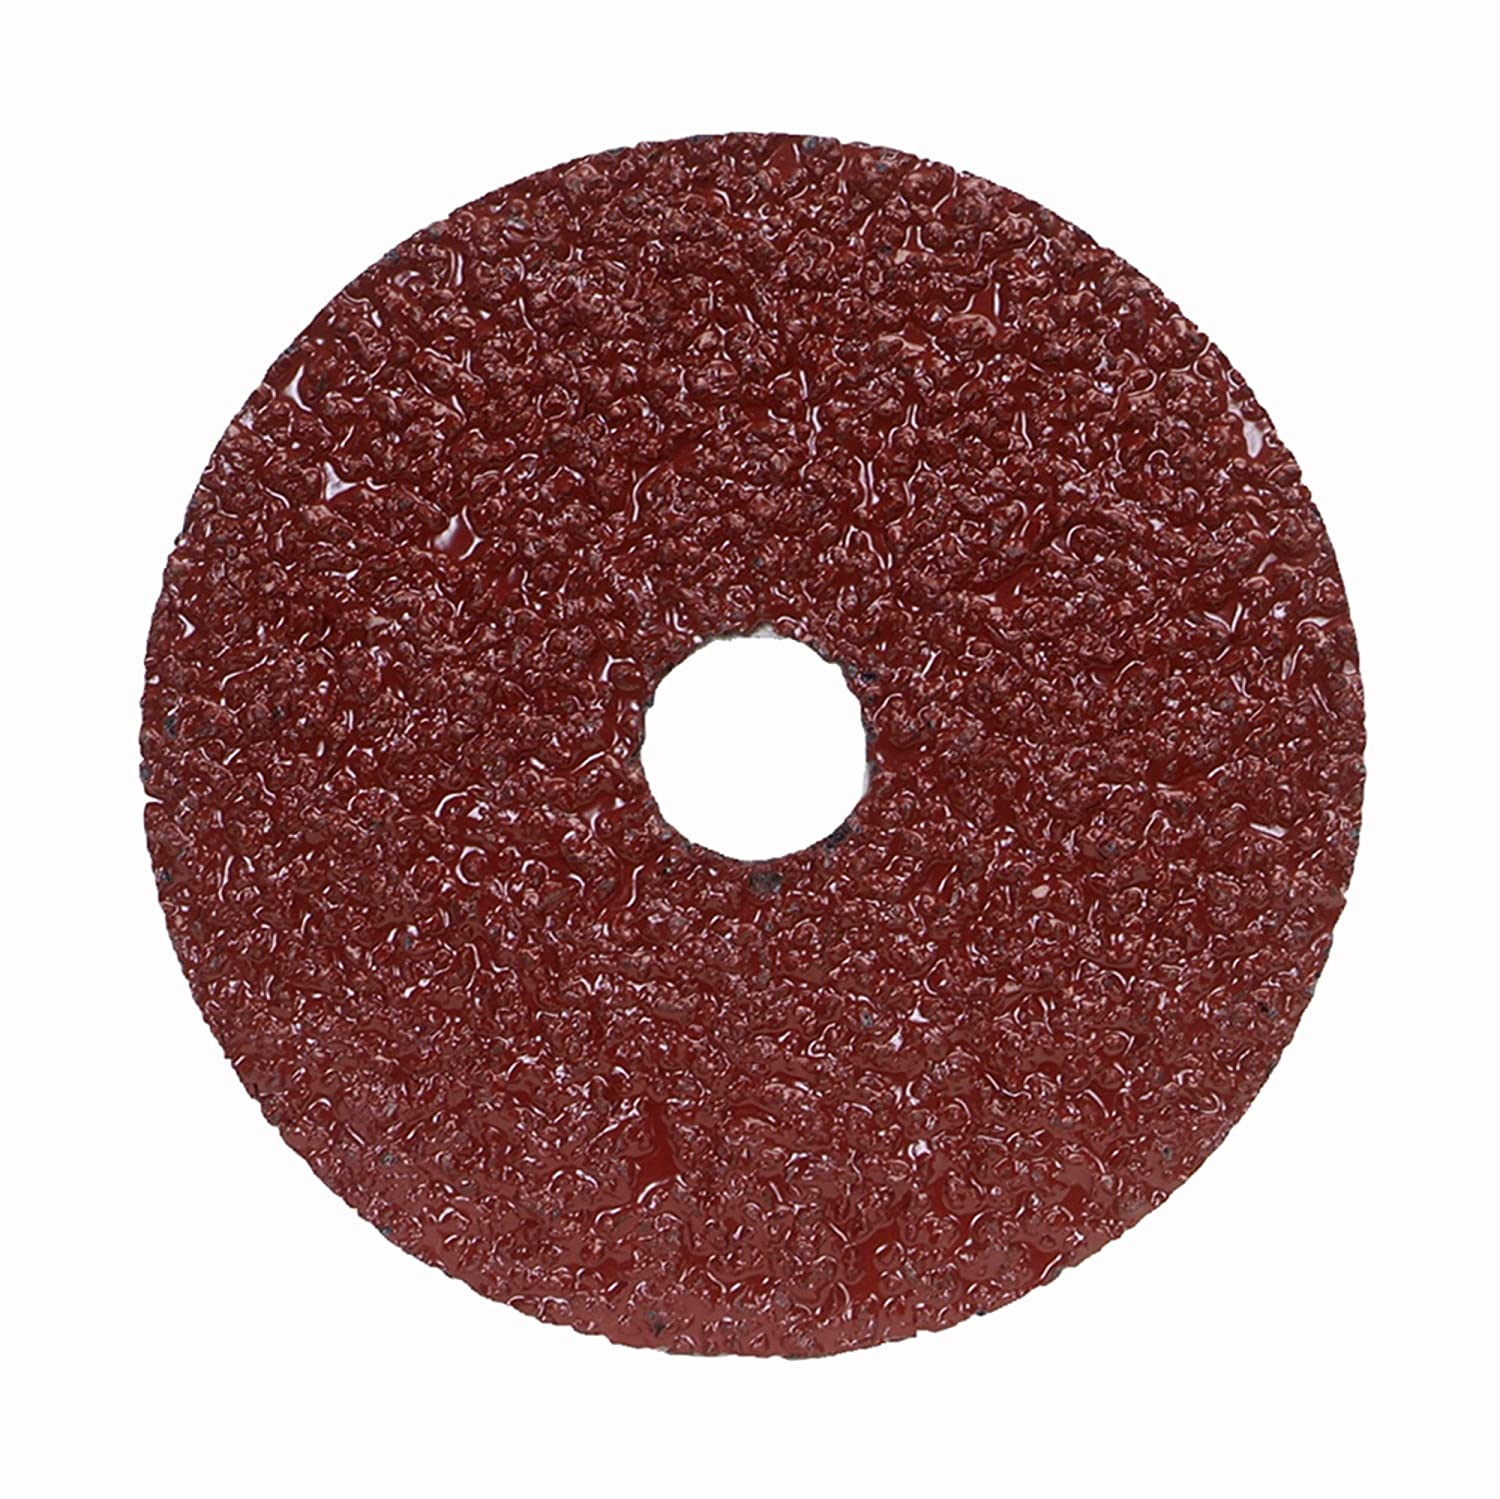 Norton Fiber Disc F240 9-1|8 X 7|8 Metal 36 Grit 05539510701